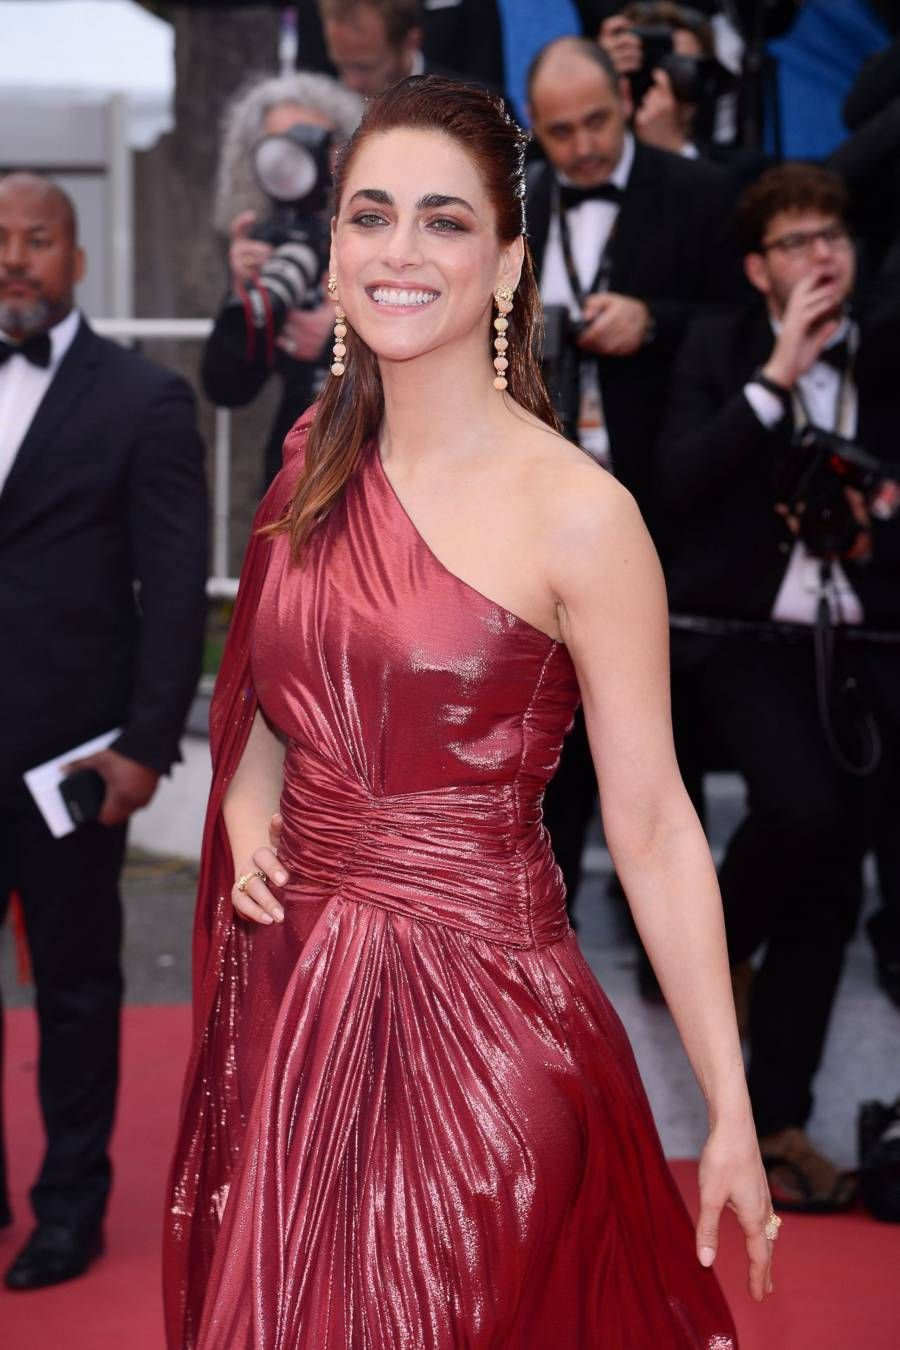 The Best Dressed Stars at the 2019 Cannes Film Festival